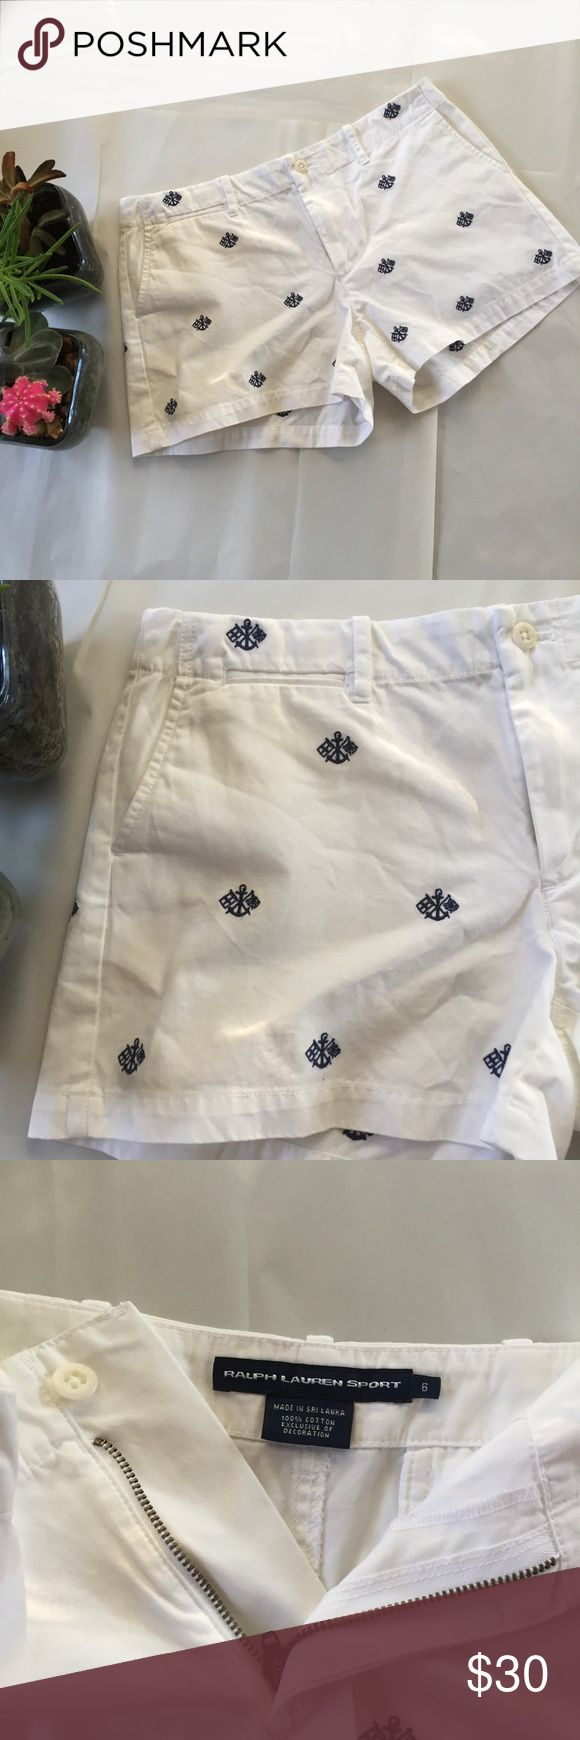 """💐Ralph Lauren💐 NWOT sport white anchor shorts I don't know if it's just me, but these shorts scream summer time and sunny days! They're stark white, which is a great contrast to any tan. 😊 they feature a hidden, fully functional zipper and button in the front, angled pockets, and buttoned back pockets. The material is really soft, too. 100% cotton. 1.5"""" waist band and a 3"""" inseam. Ralph Lauren Shorts"""